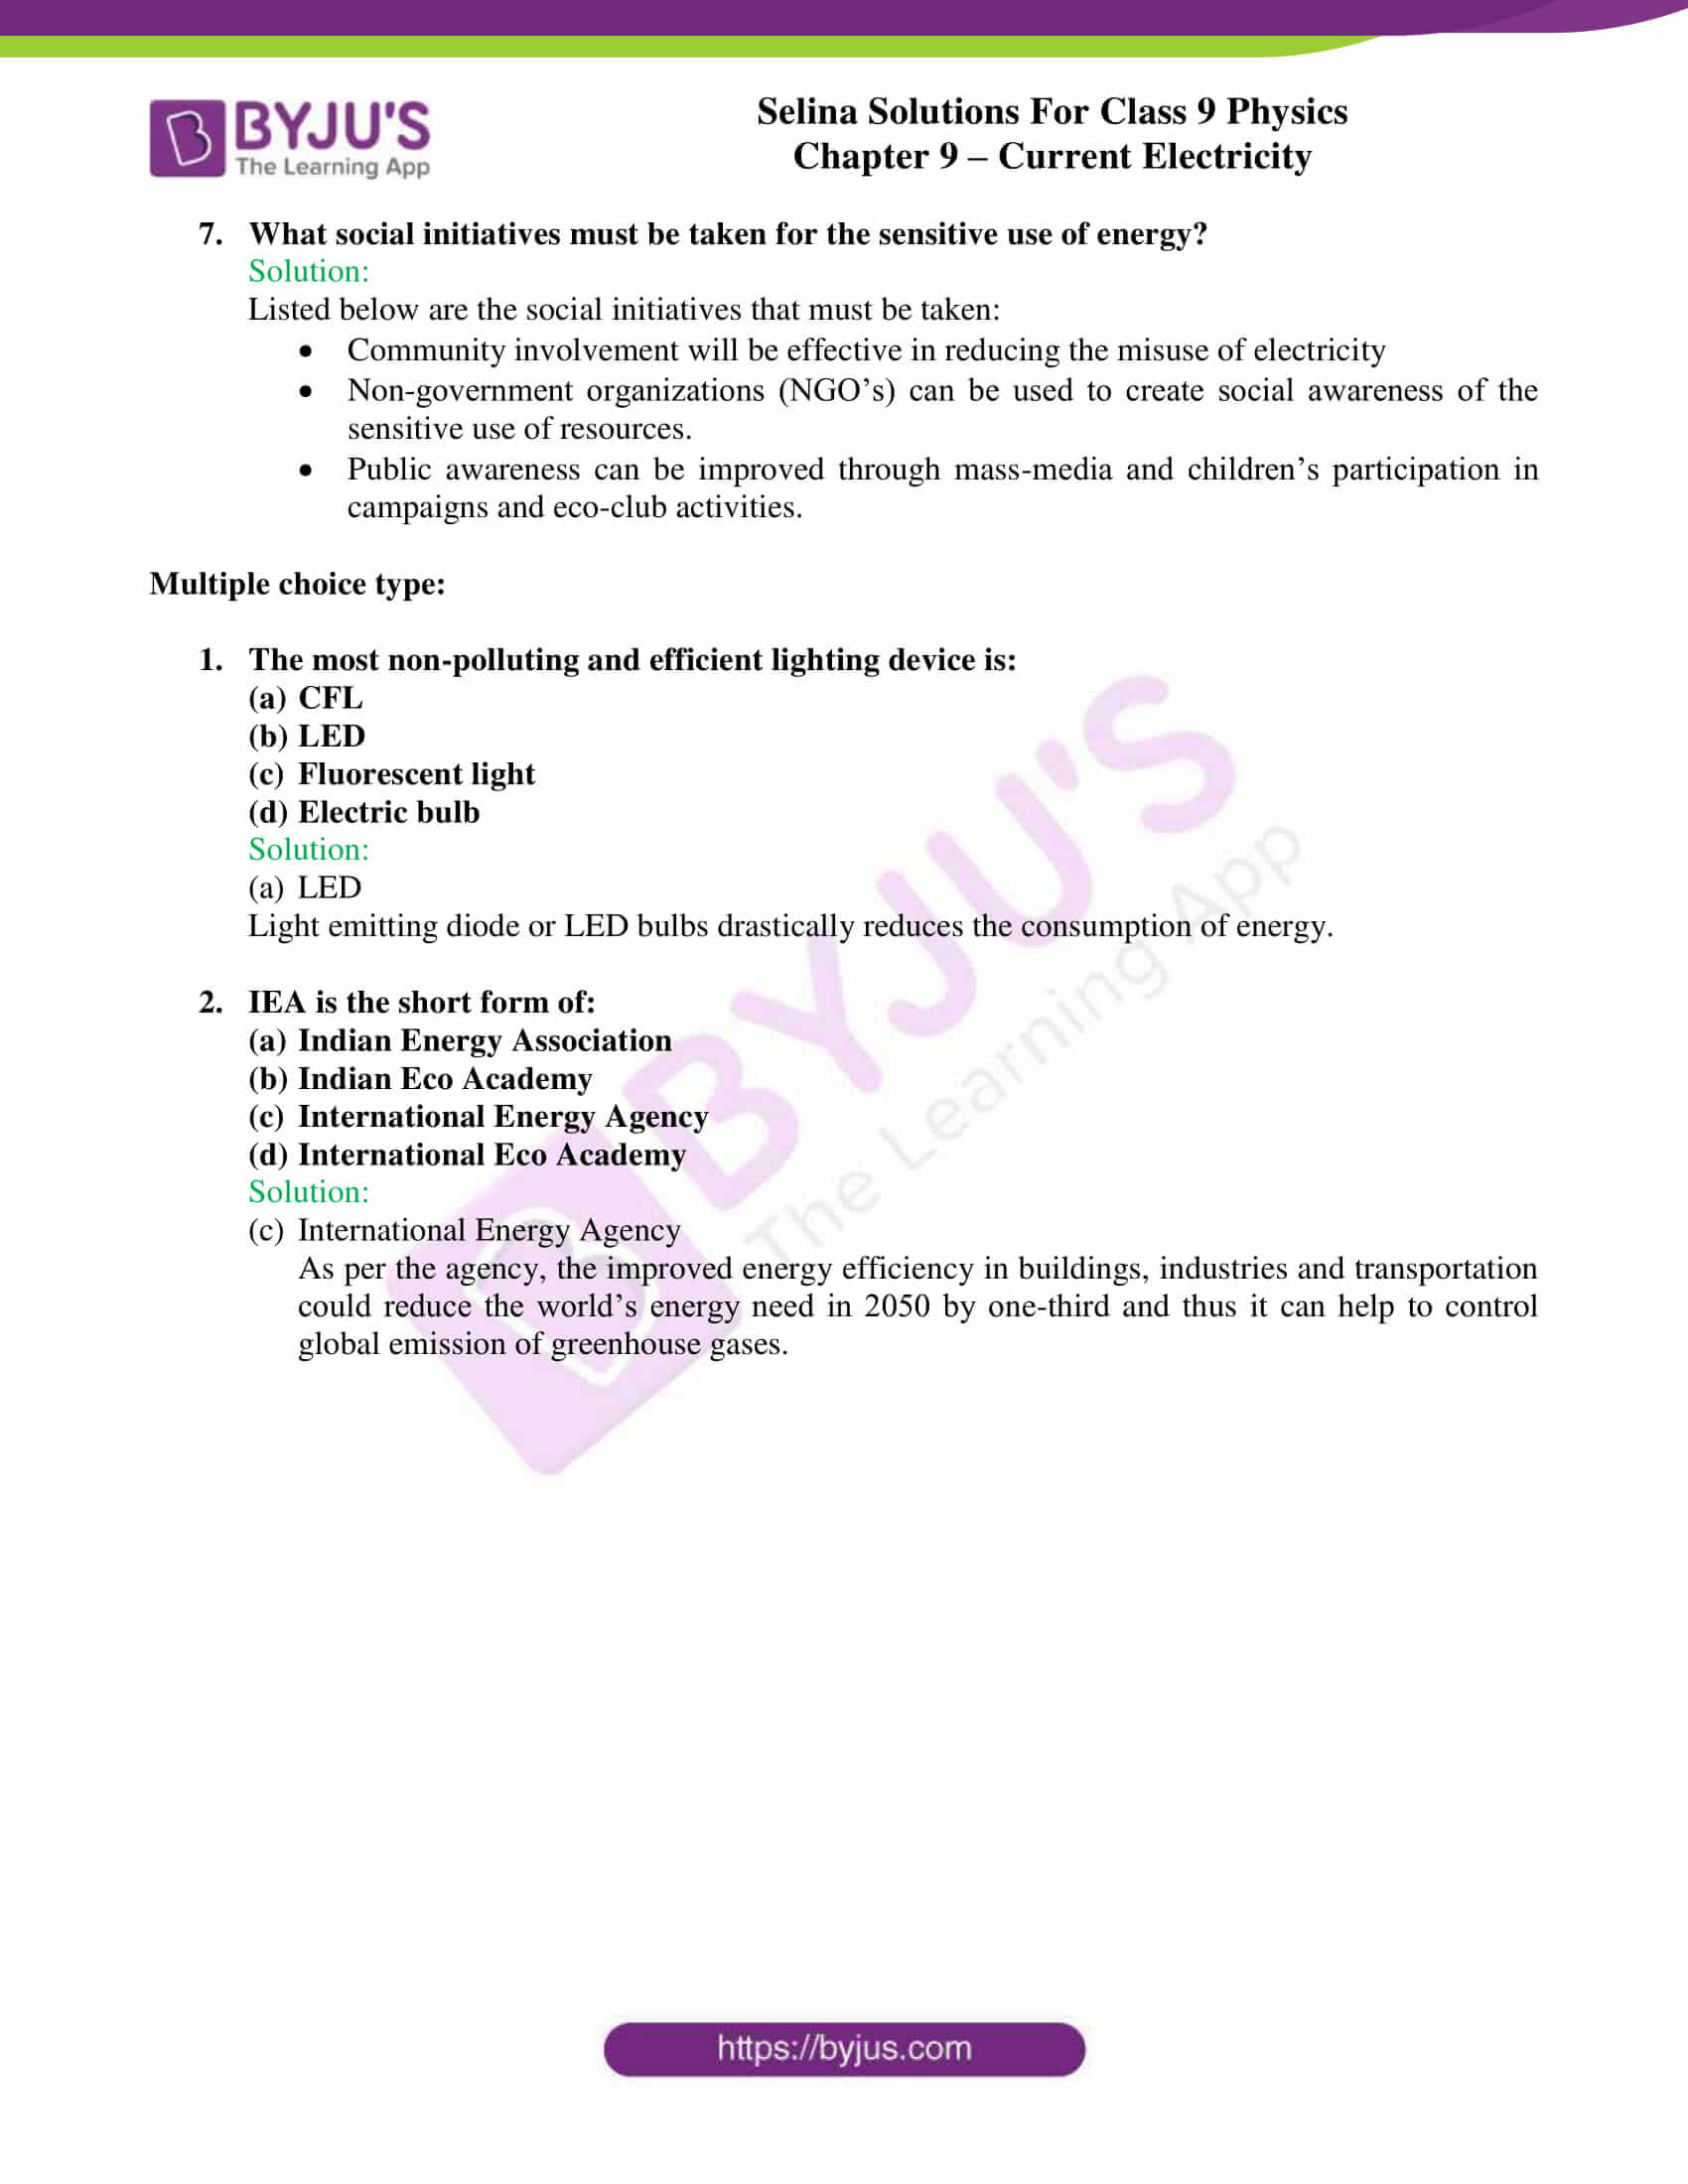 selina solutions class 9 physics chapter 9 Current Electricity part 15